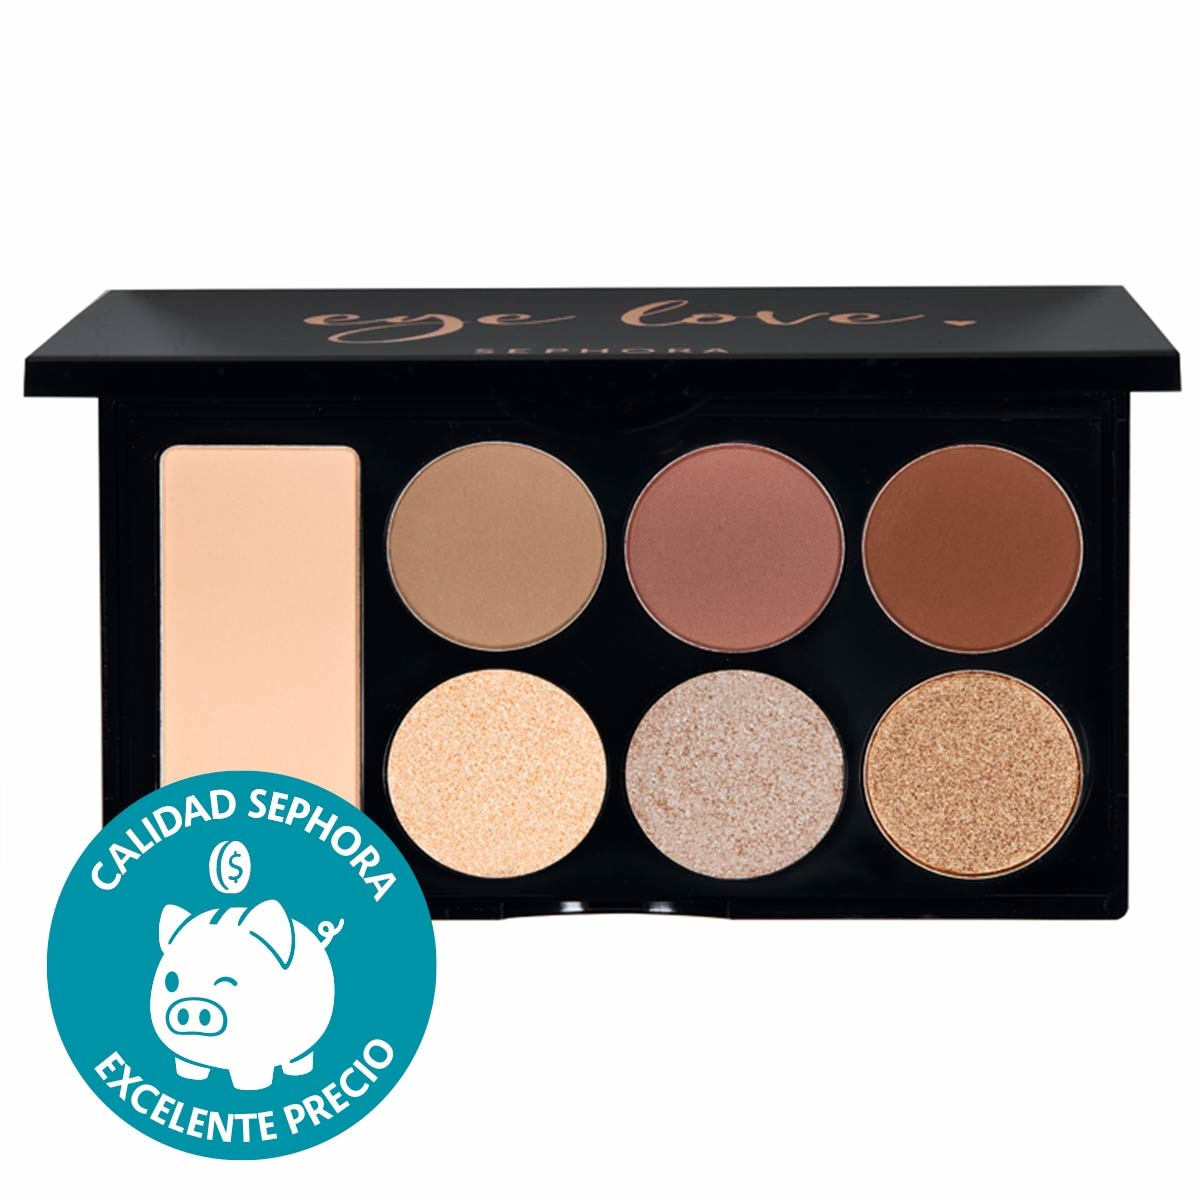 EYE LOVE EYESHADOW PALETTE (PALETA DE OJOS)